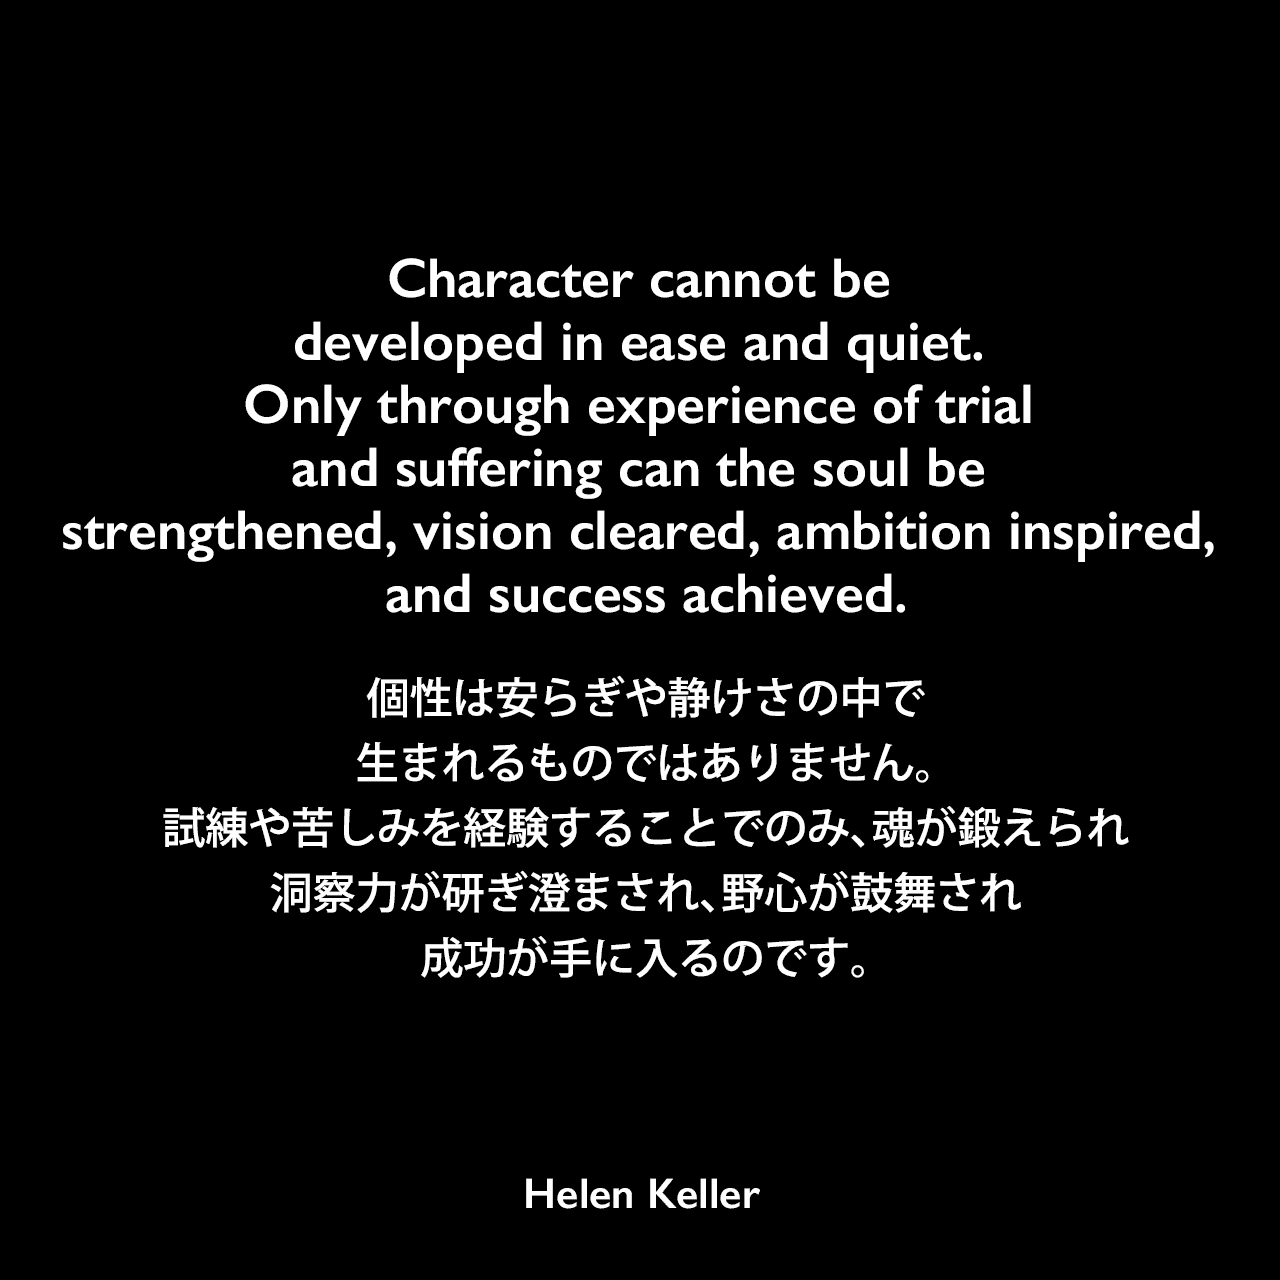 Character cannot be developed in ease and quiet. Only through experience of trial and suffering can the soul be strengthened, vision cleared, ambition inspired, and success achieved.個性は安らぎや静けさの中で生まれるものではありません。試練や苦しみを経験することでのみ、魂が鍛えられ、洞察力が研ぎ澄まされ、野心が鼓舞され、成功が手に入るのです。- アハロン・リヒテンシュタインの本「Henry More: The Rational Theology of a Cambridge Platonist」よりHelen Keller